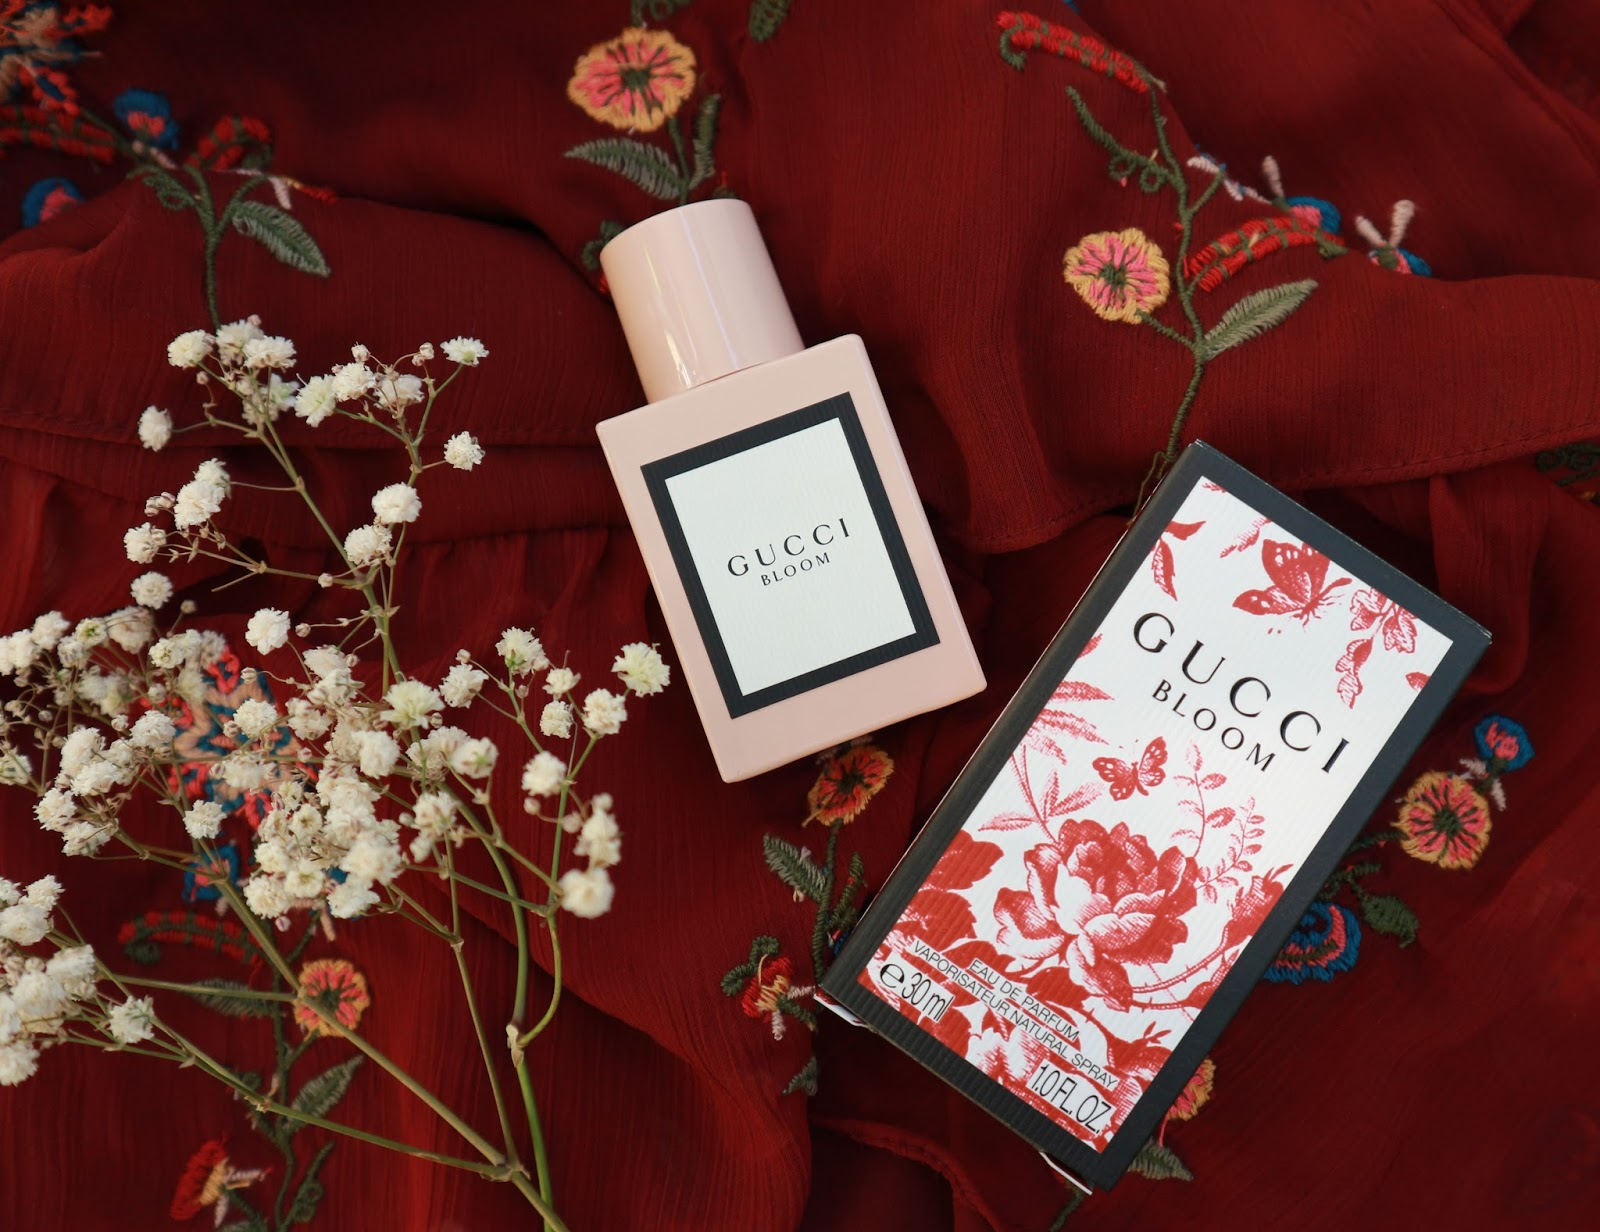 Gucci Gucci Bloom Perfume Review Another Kind Of Beauty Blog